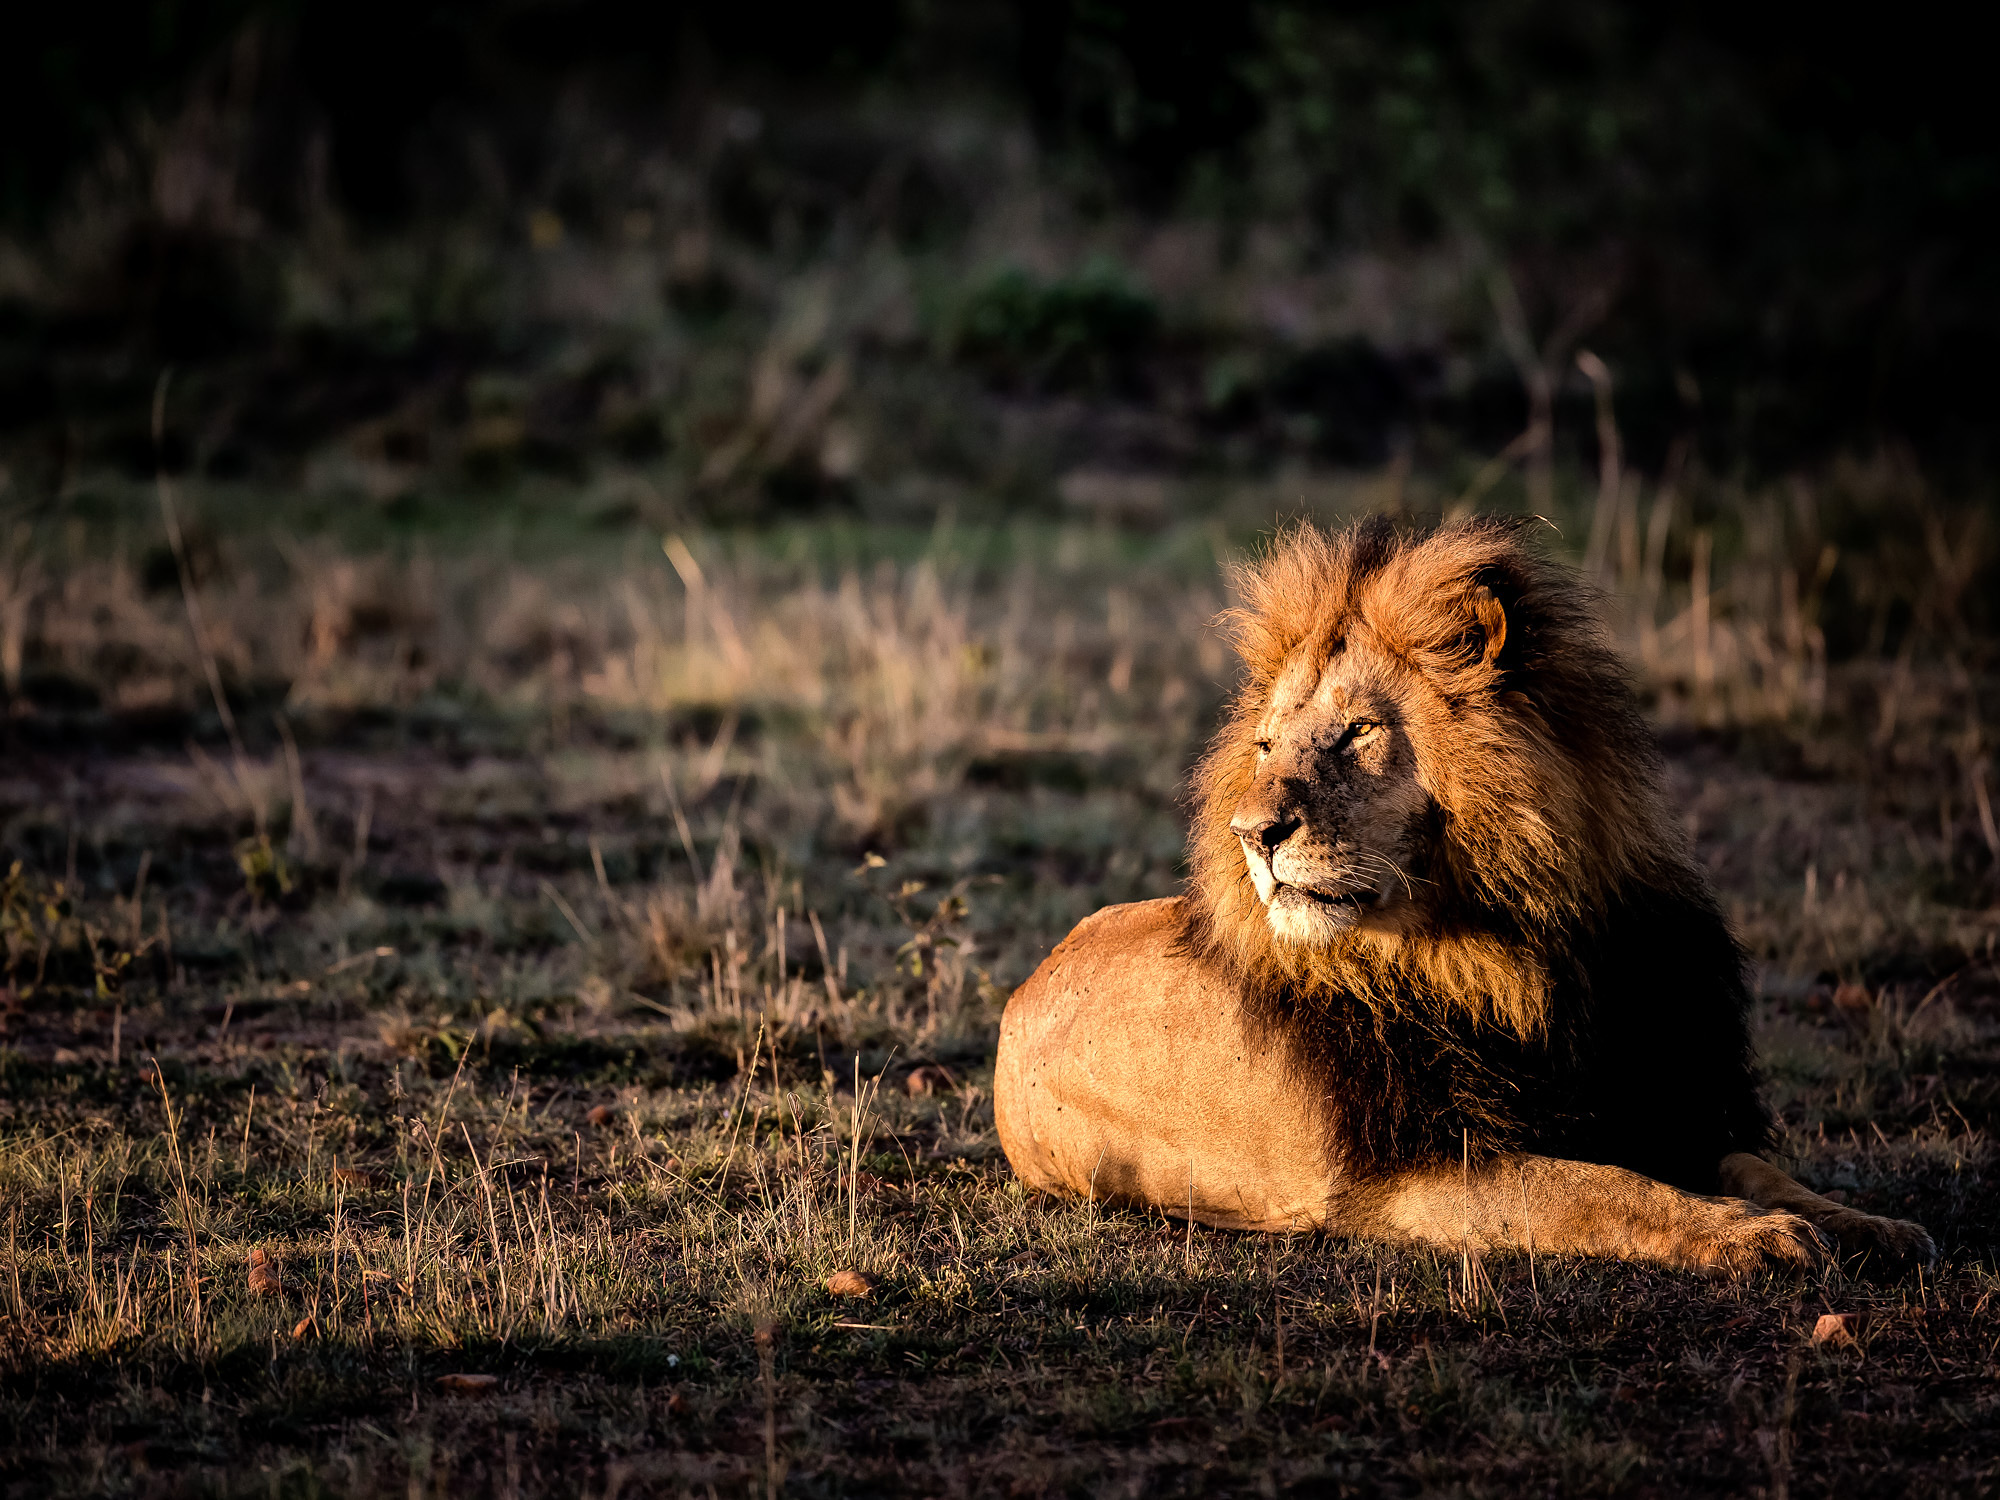 Sitting in a pool of light in the morning this lion looks regal.